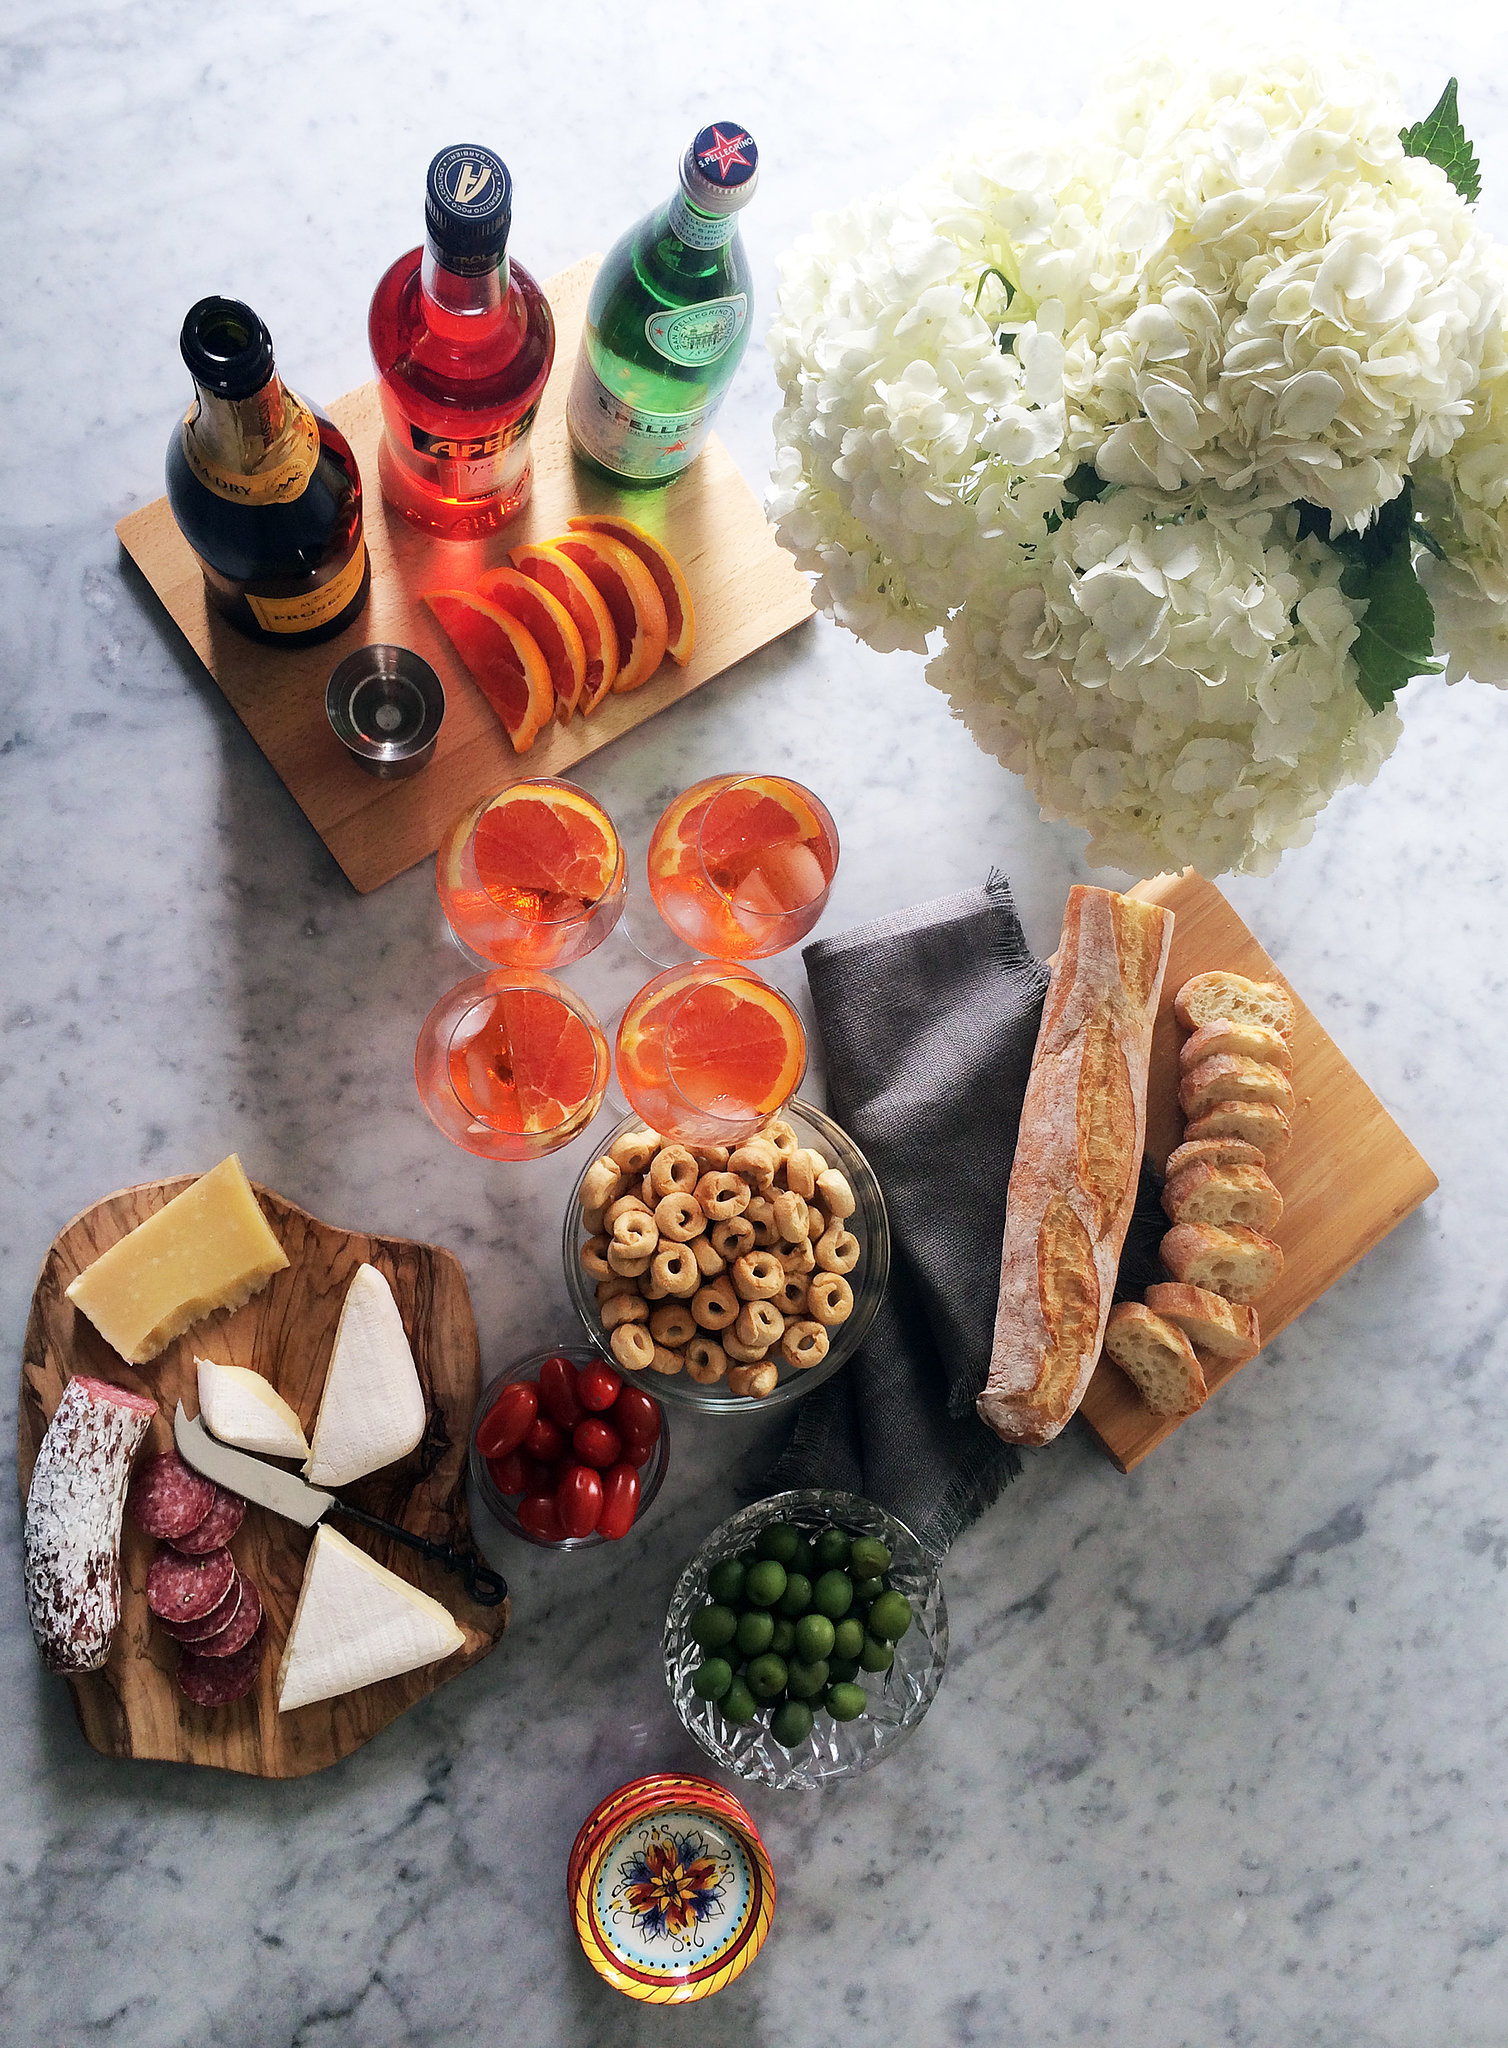 Aperol Spritz isn't too well known in the US, which is what makes it special to serve and such a conversation starter. Her other entertaining essentials: fresh flowers, cheese, Champagne, and an after-dinner drink, be it cognac or whiskey.